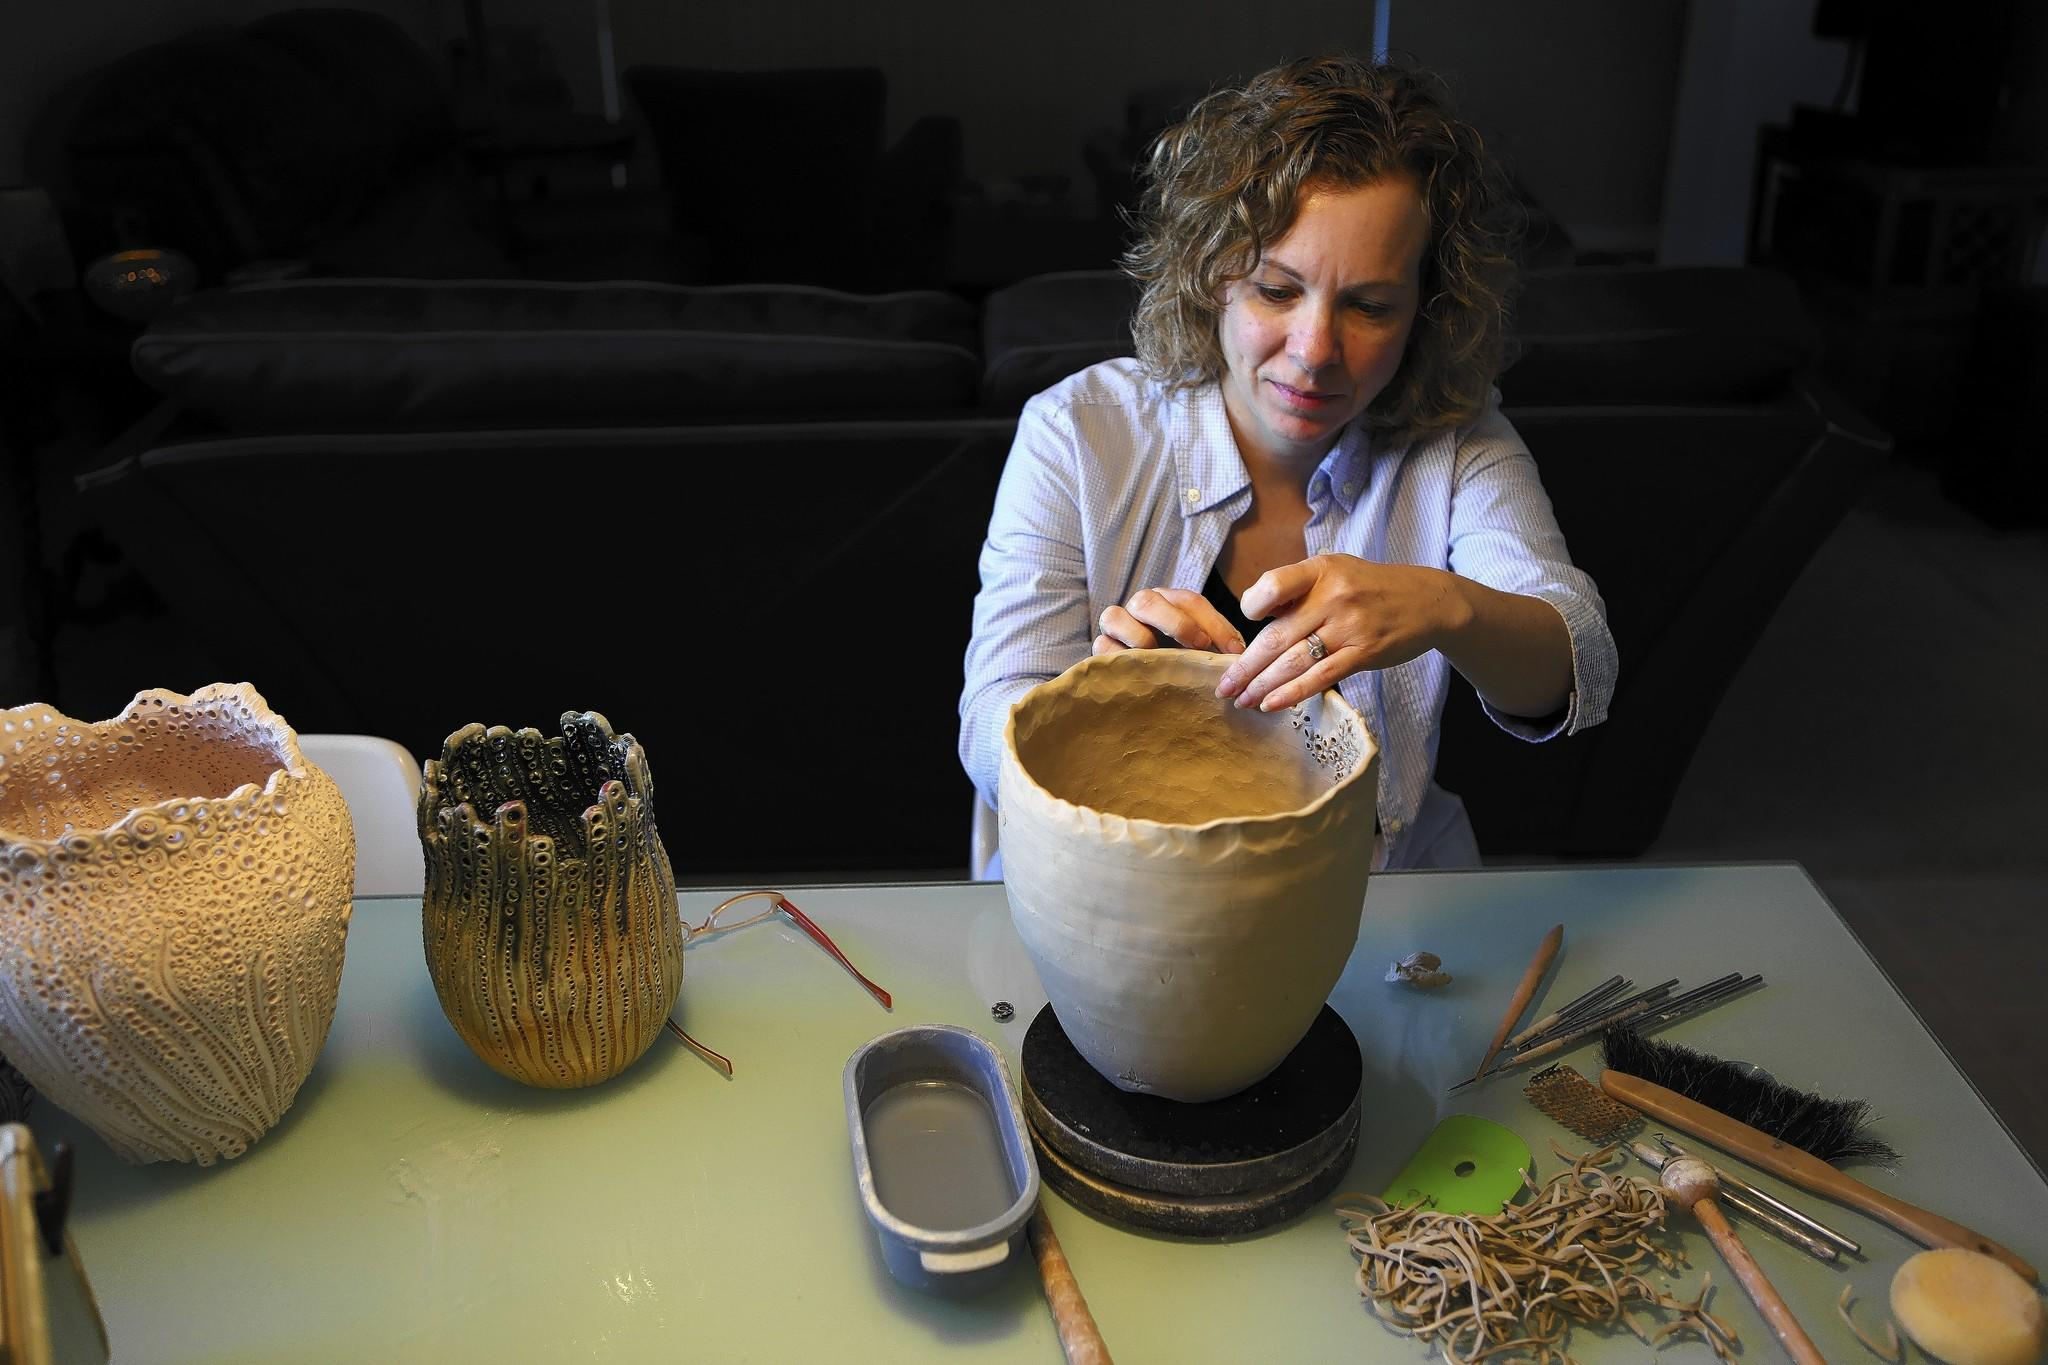 Peggi Nadeau works on a piece on Monday, January 21, 2014. Nadeau's pottery wiill be on display at the Mount Dora Art Festival.